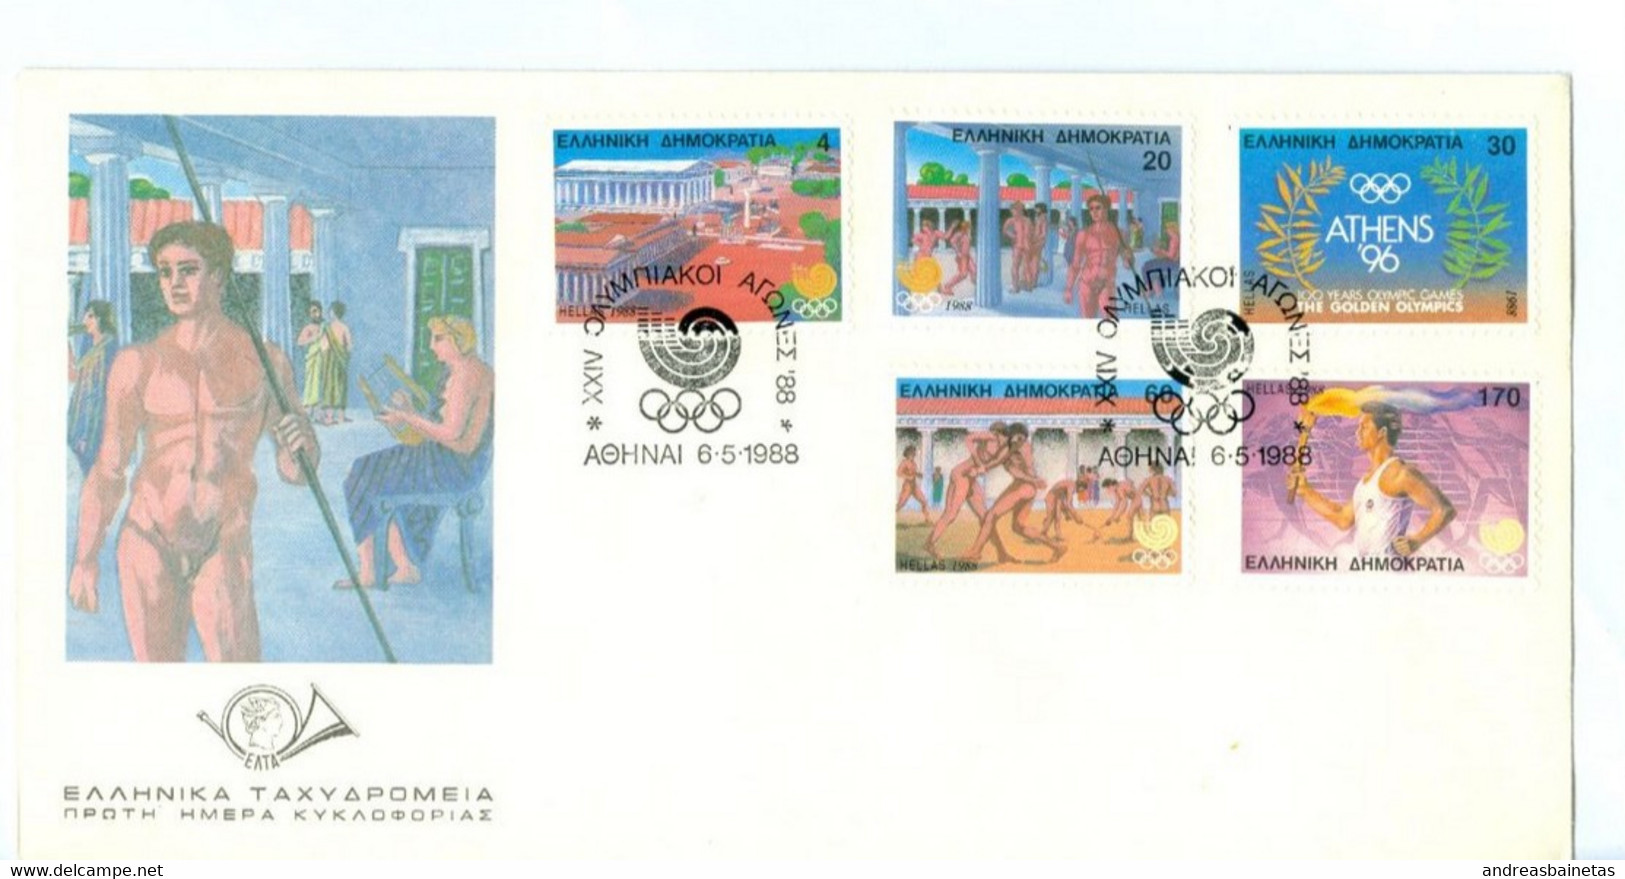 GREECE FDC 6/5/1988 OLYMPIC GAMES SEUL - FDC